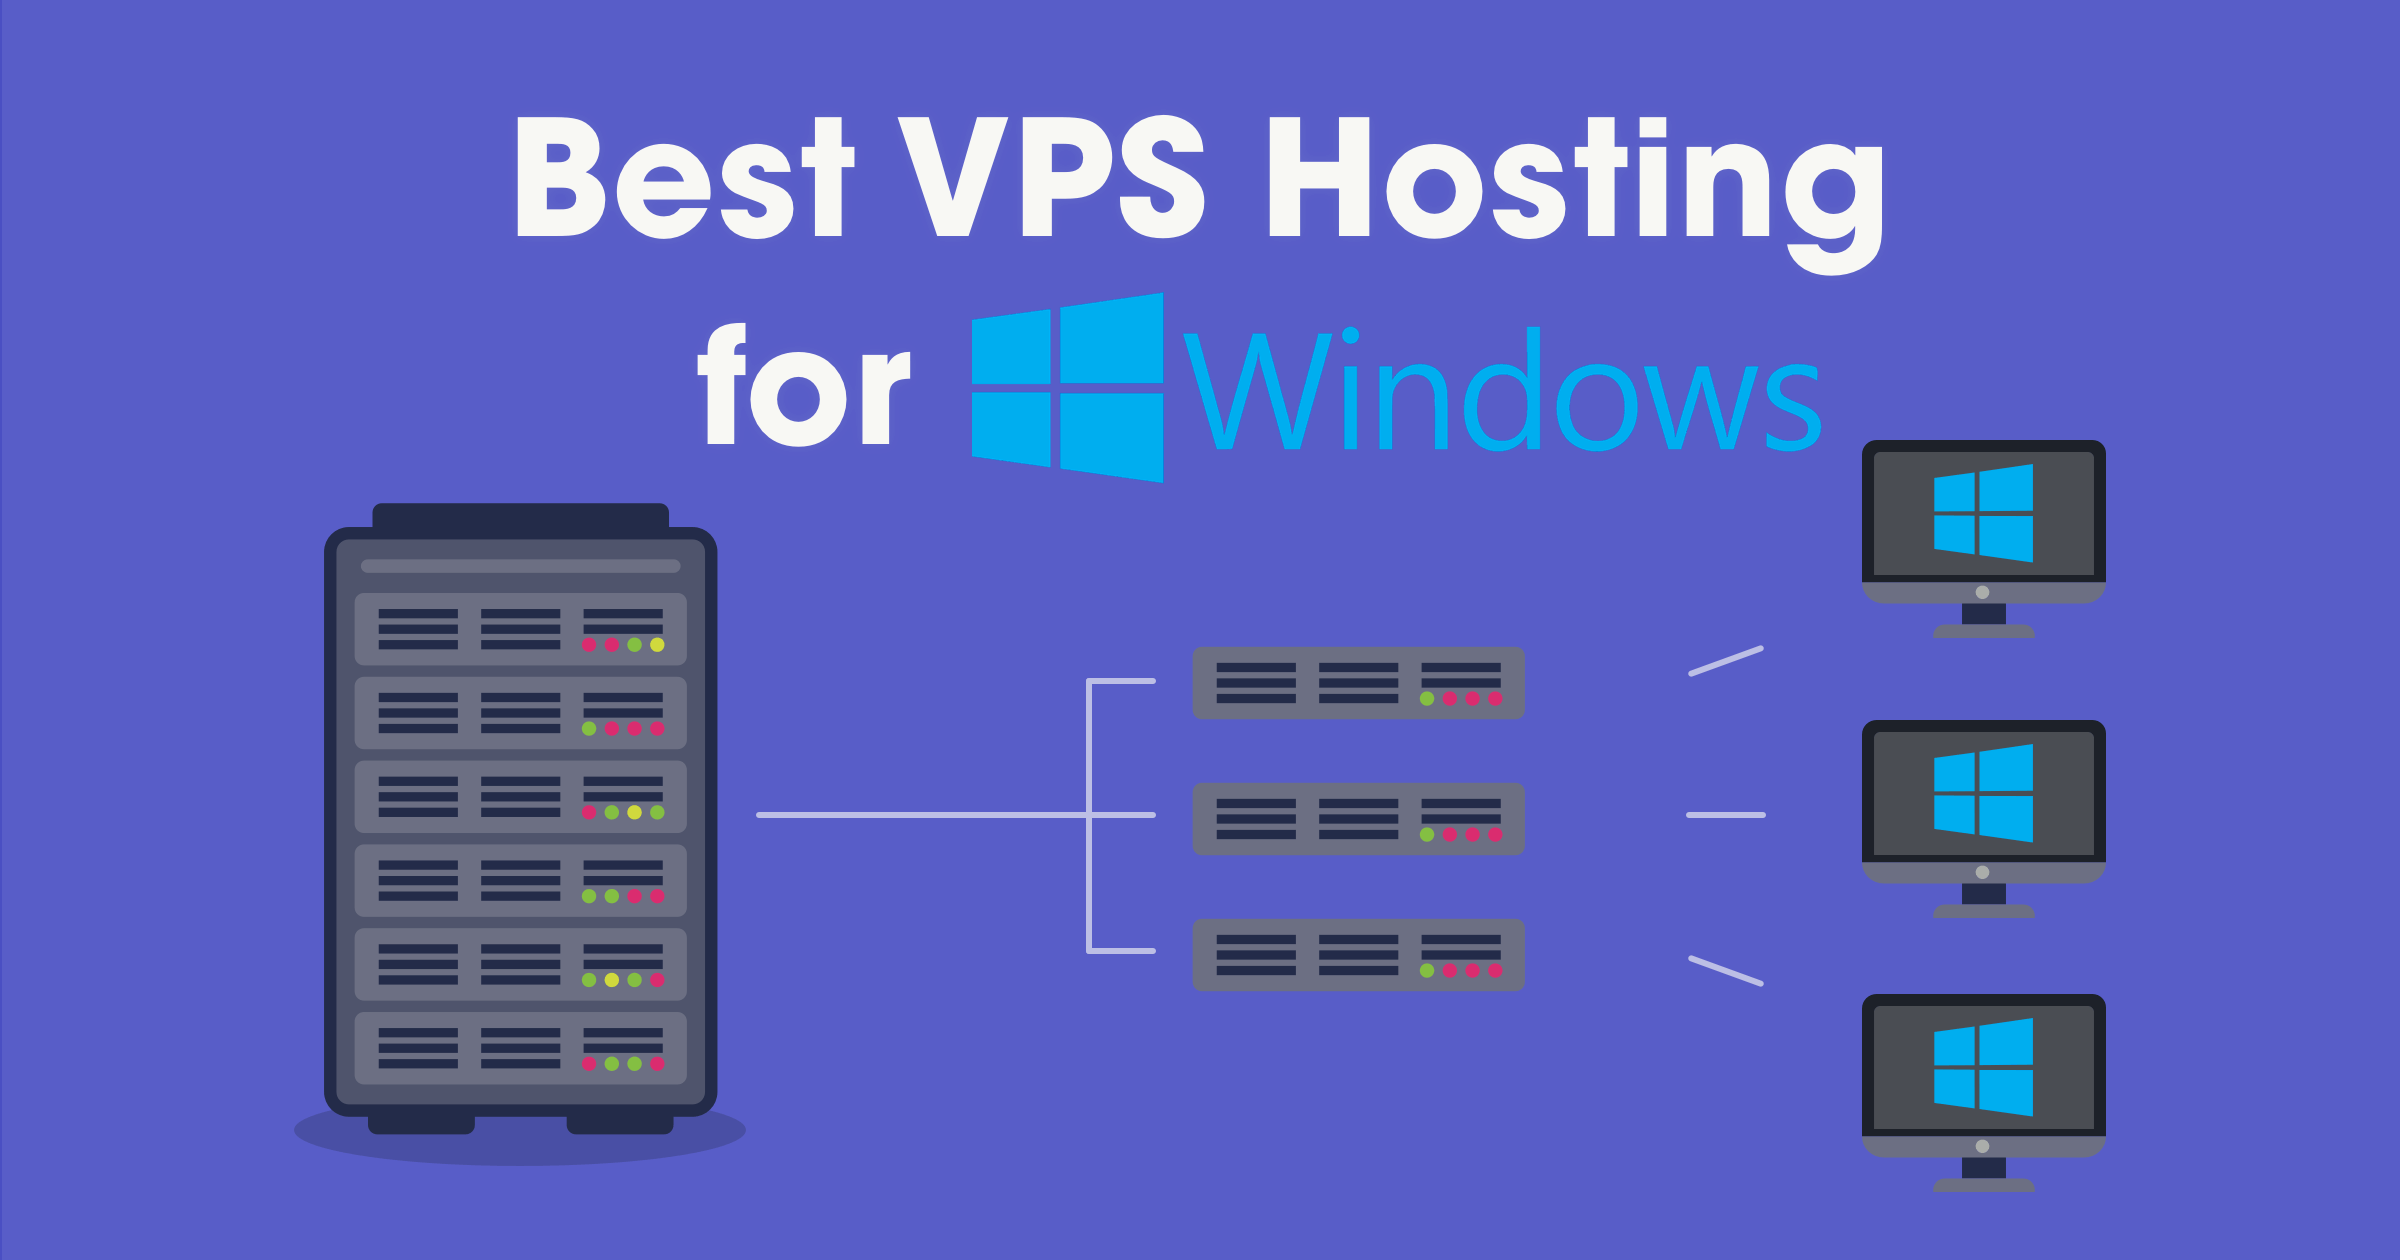 Essential Components For Windows VPS